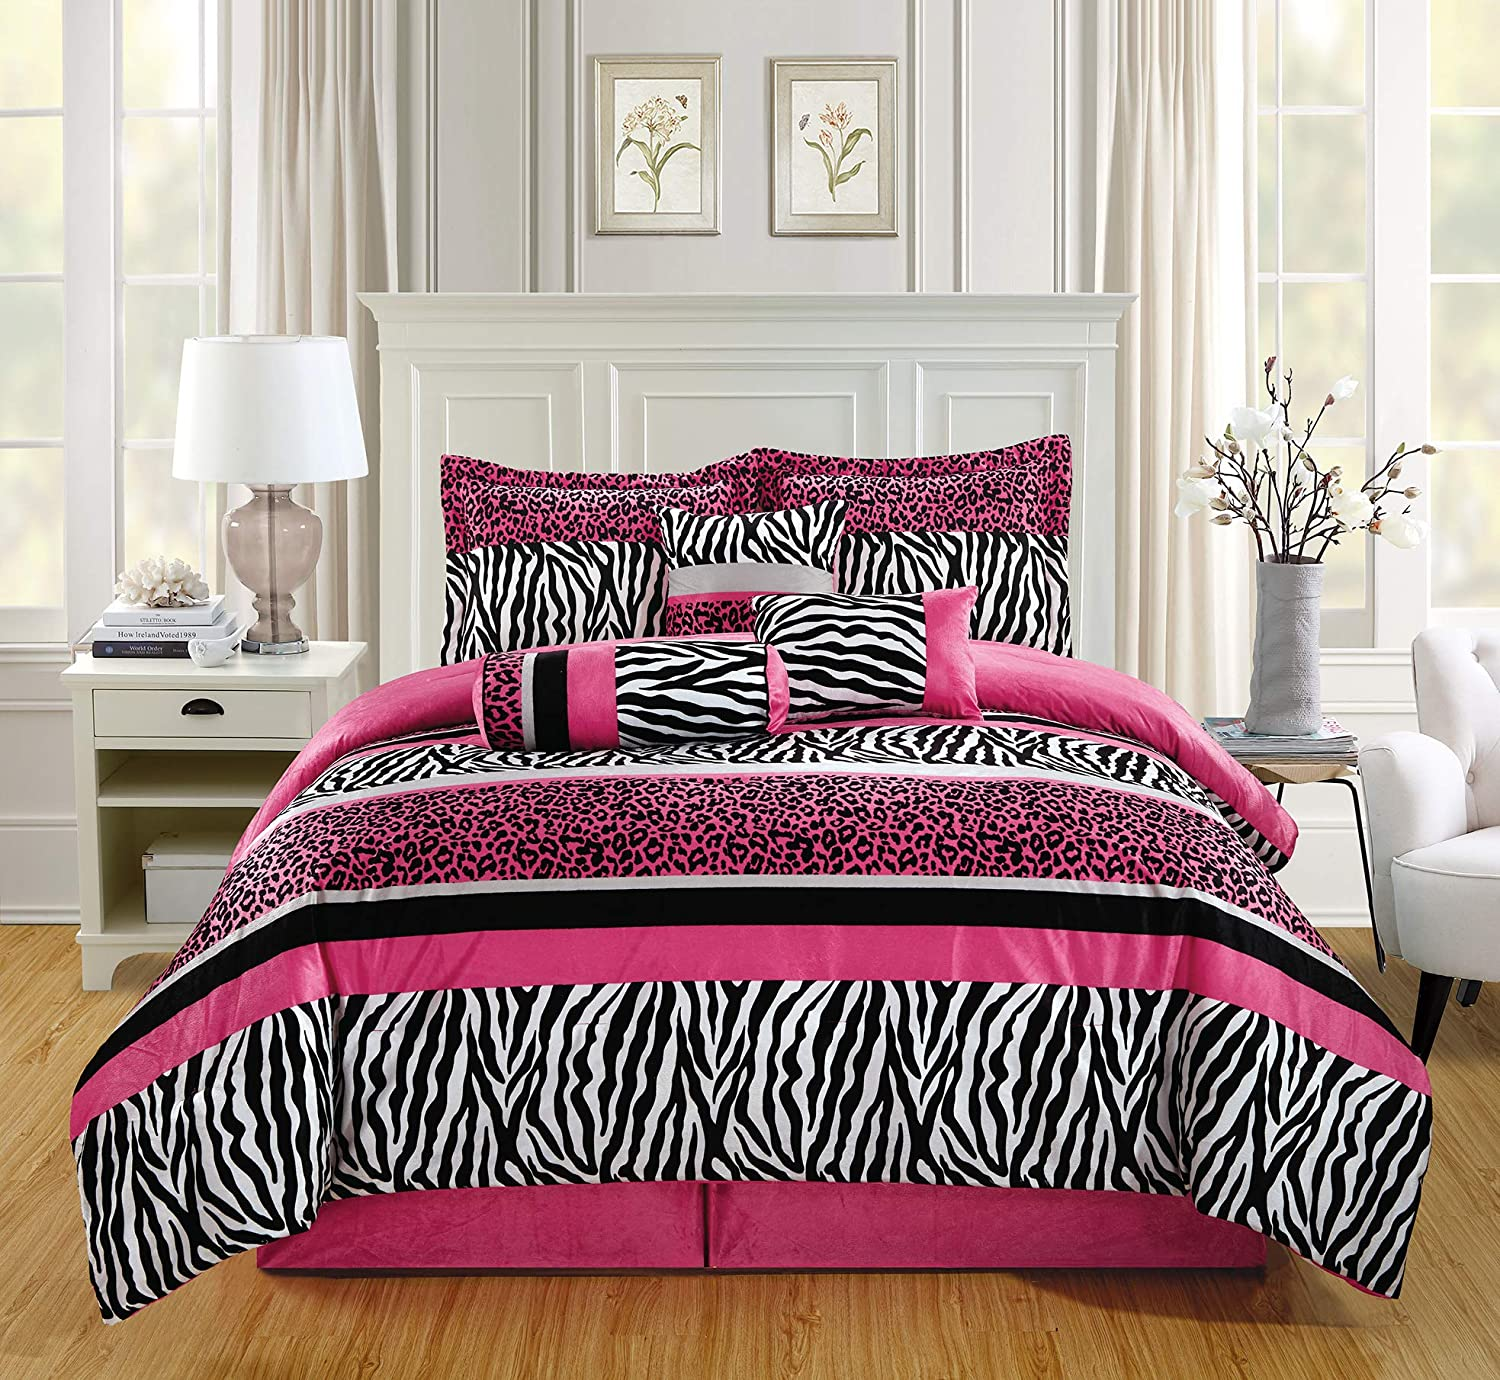 GrandLinen 5 Piece Twin Size Hot Pink Black Animal Print Safari Comforter Set. Leopard, Zebra, Velvet Bedding with Accent Pillows and Bed Skirt